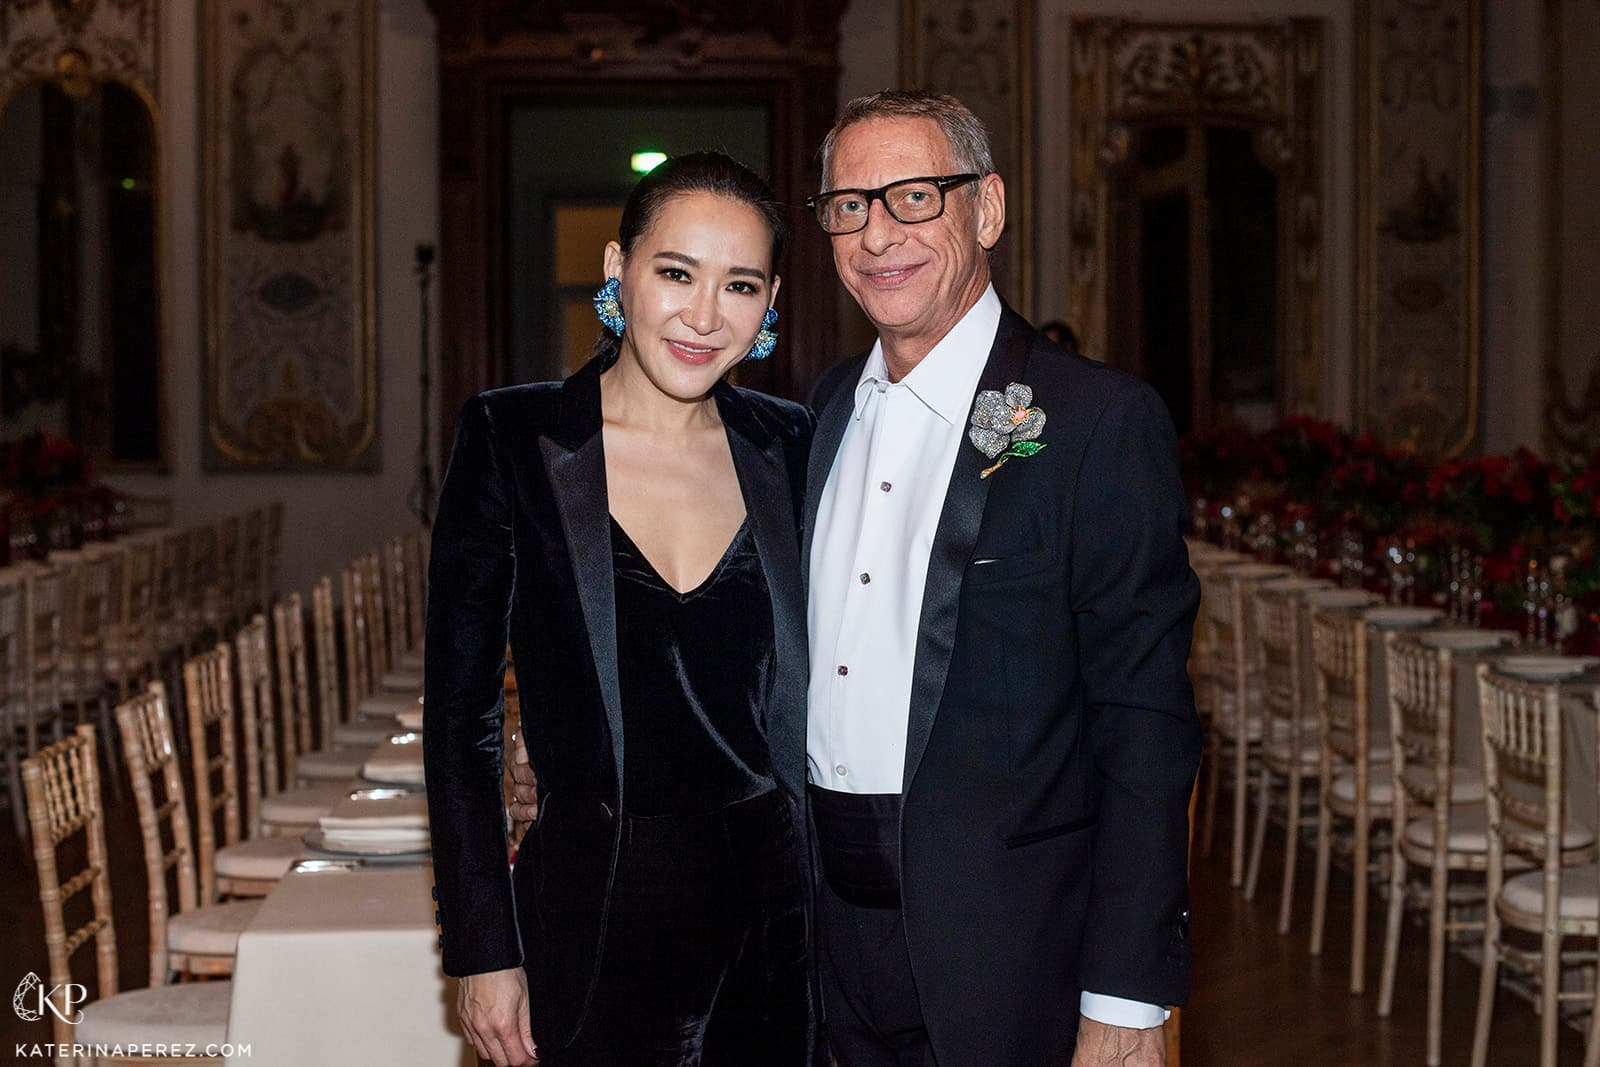 Cindy Chao with Jacques Babando, who helped to organise the evening's celebration